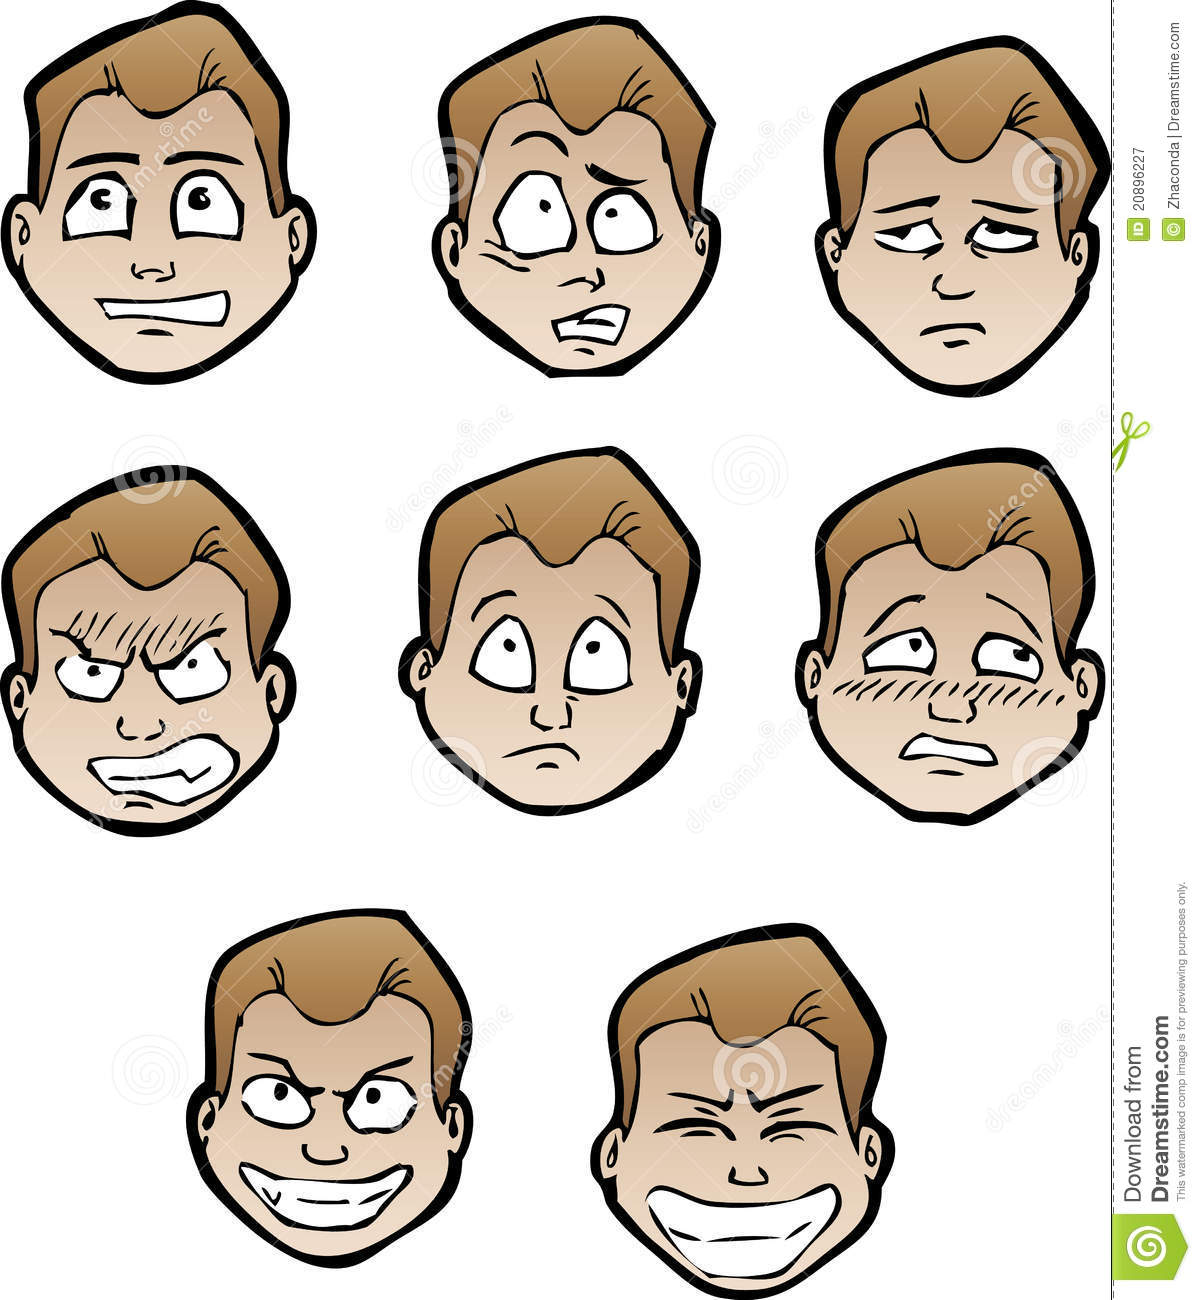 Cartoon Faces Male Royalty Free Stock Photography - Image: 20896227